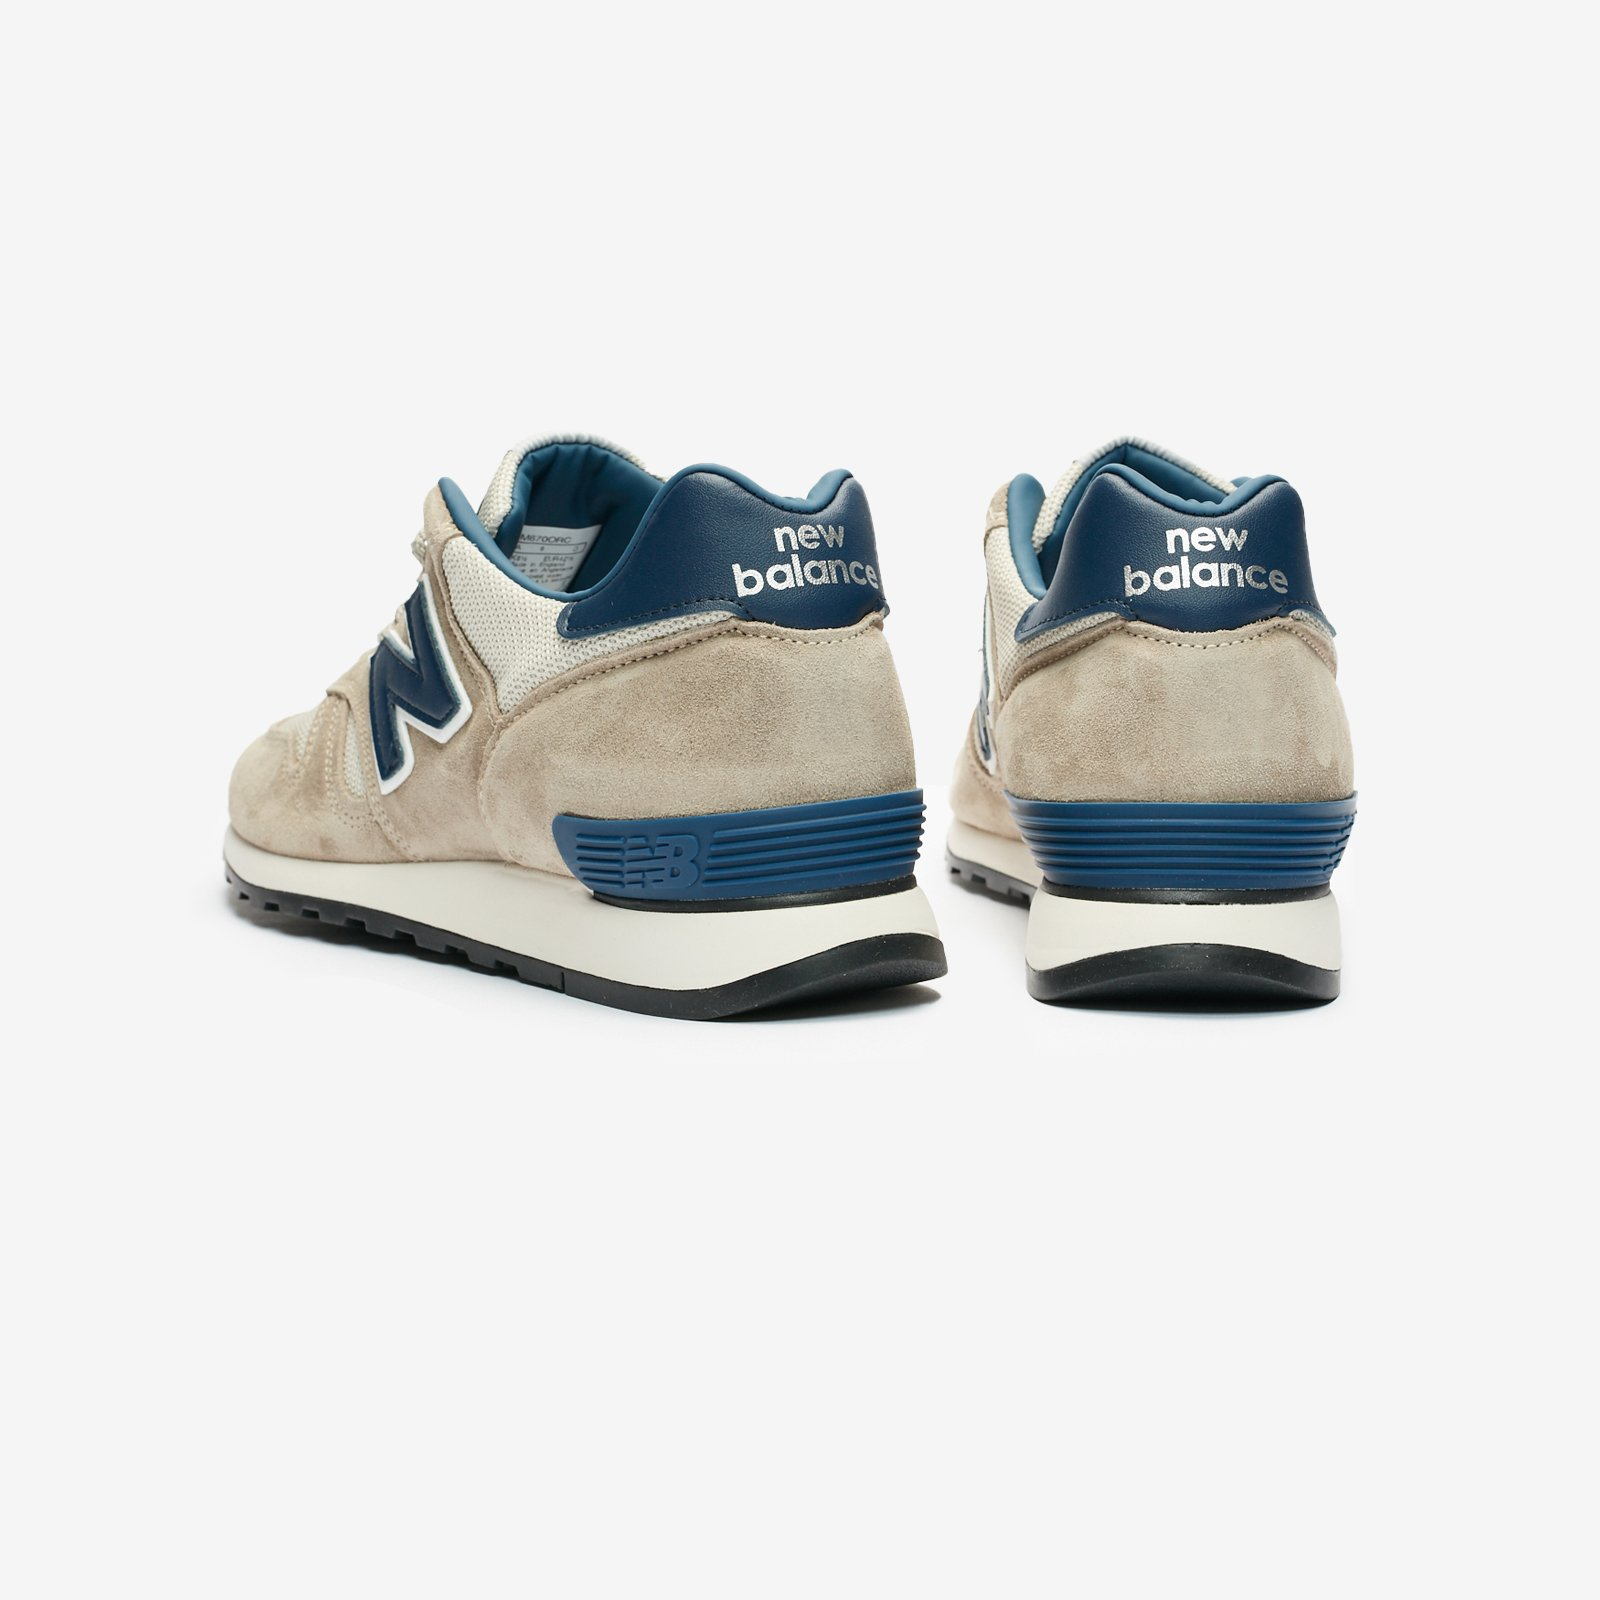 New Balance M670 - M670orc - Sneakersnstuff | sneakers ...